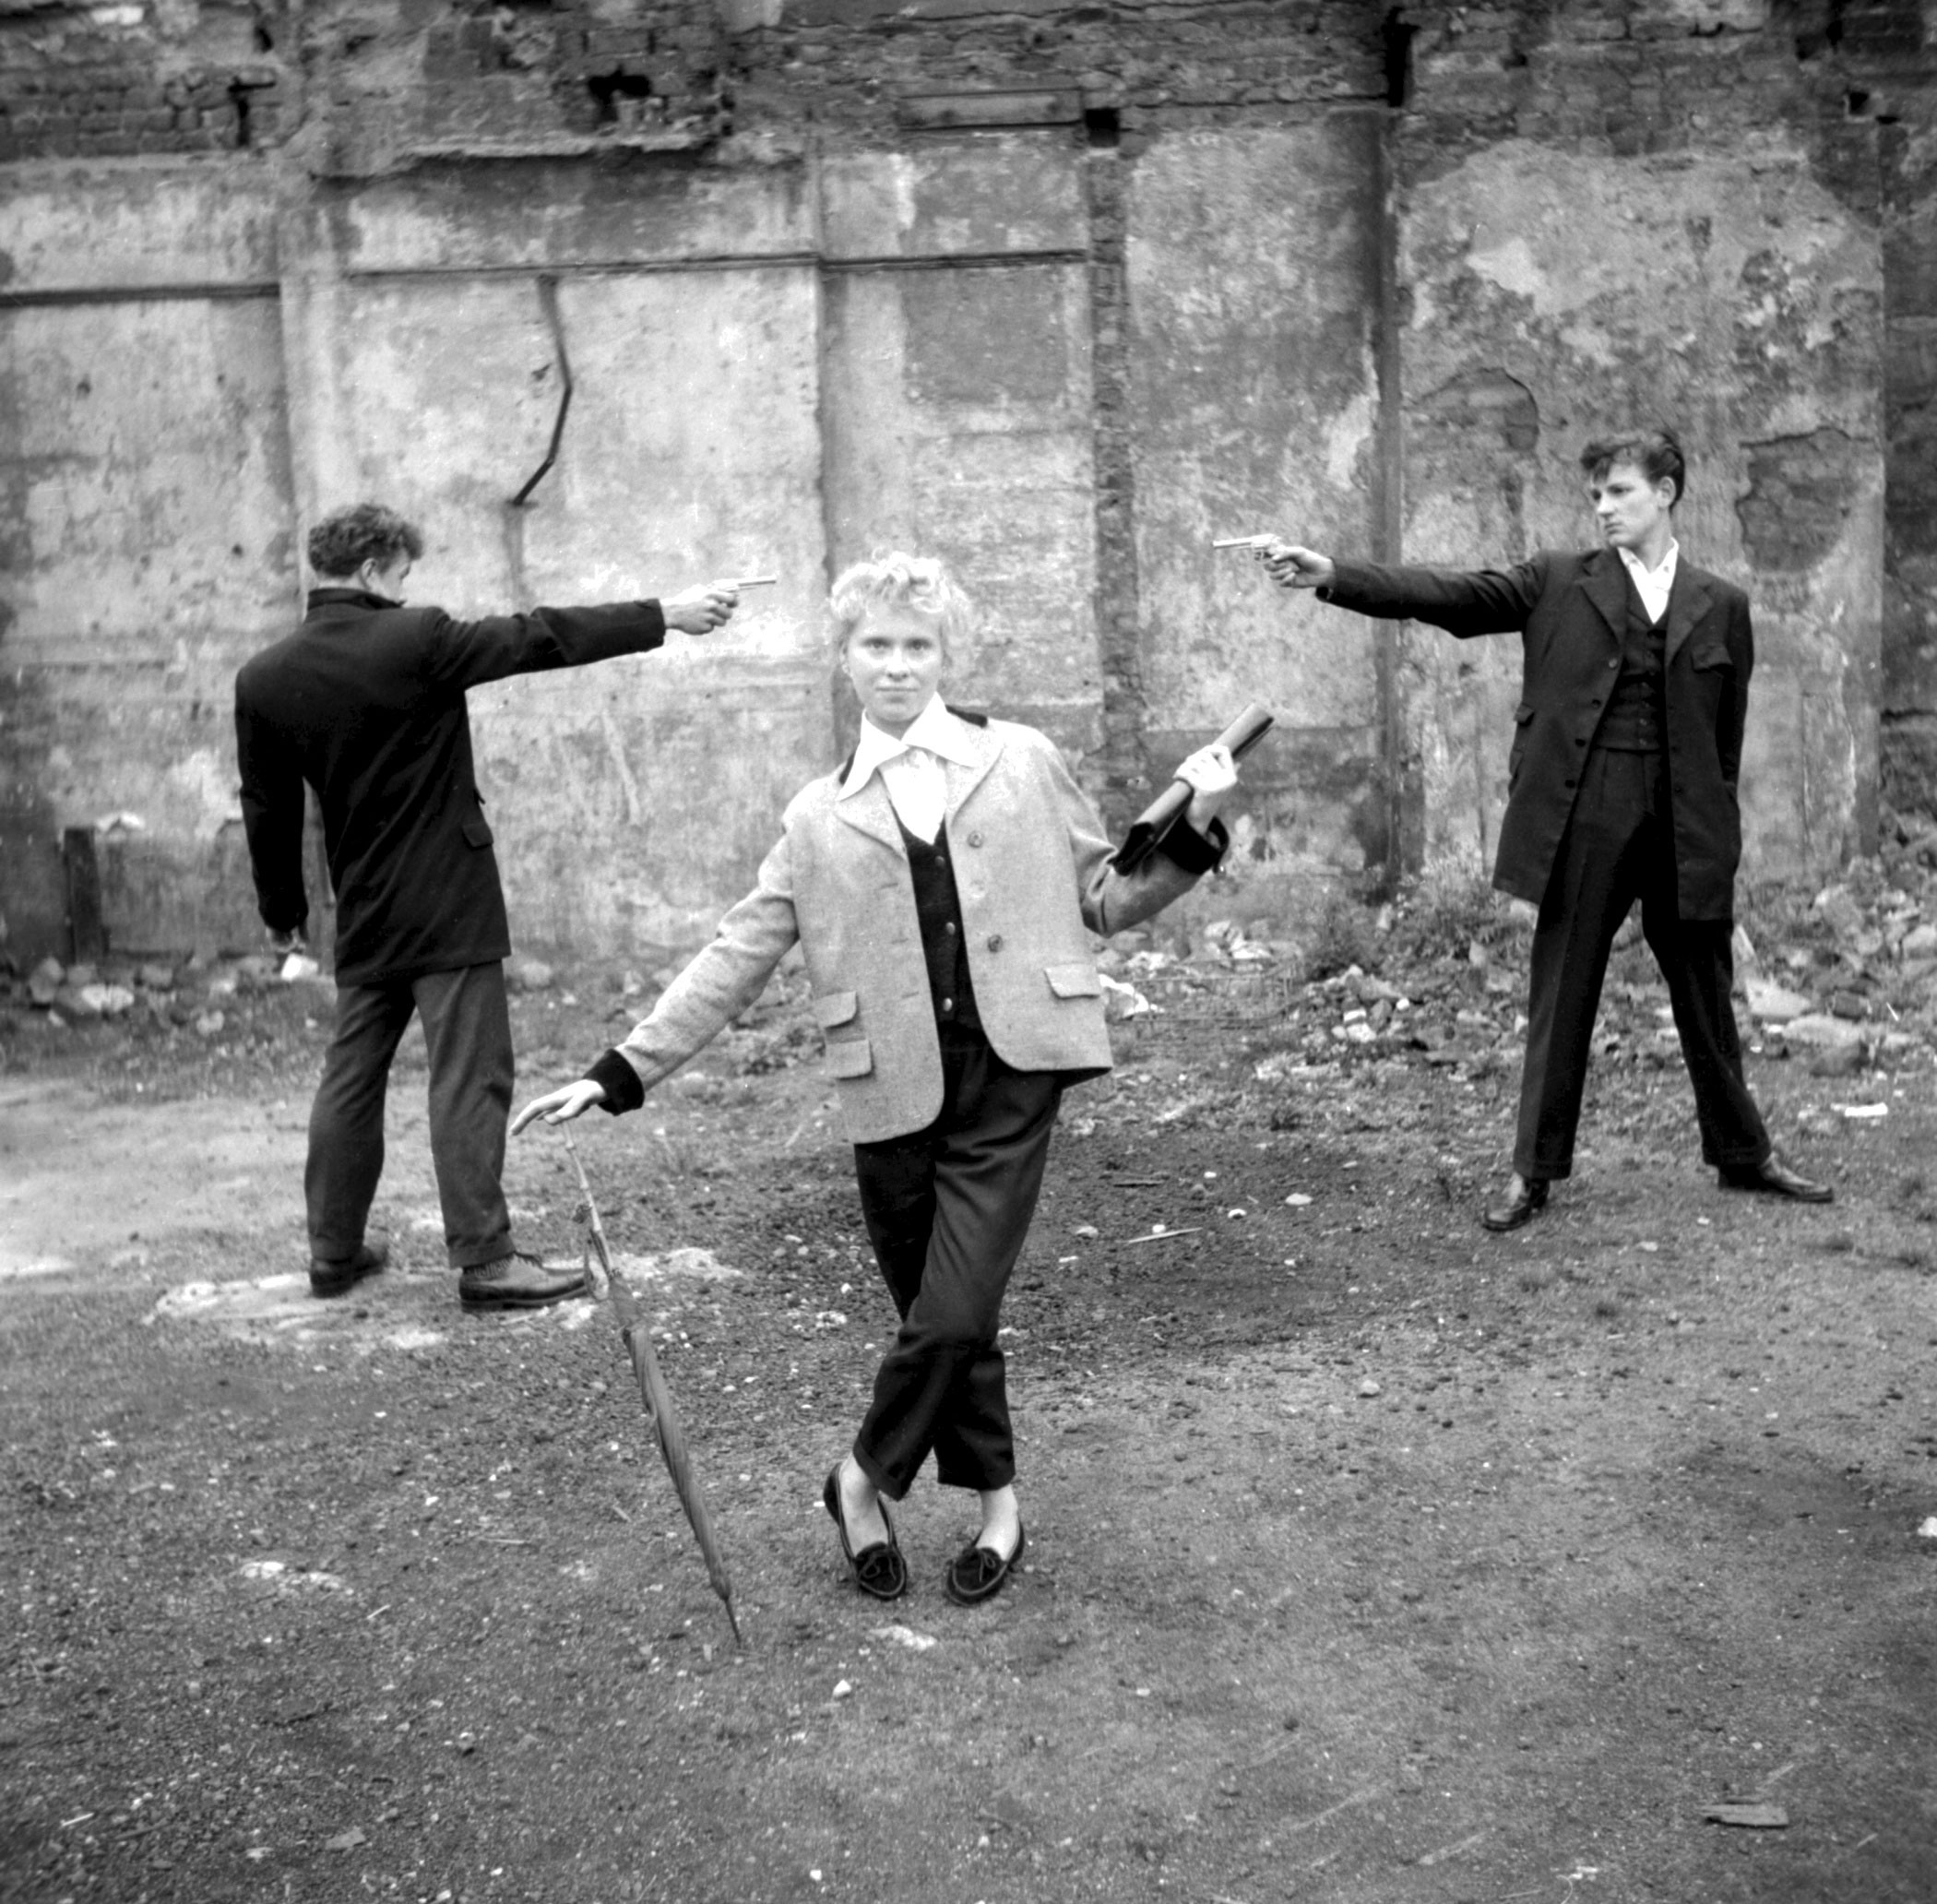 16-year-old Eileen from Bethnal Green, with two teddy boys  duelling  over her on an East End bombsite.